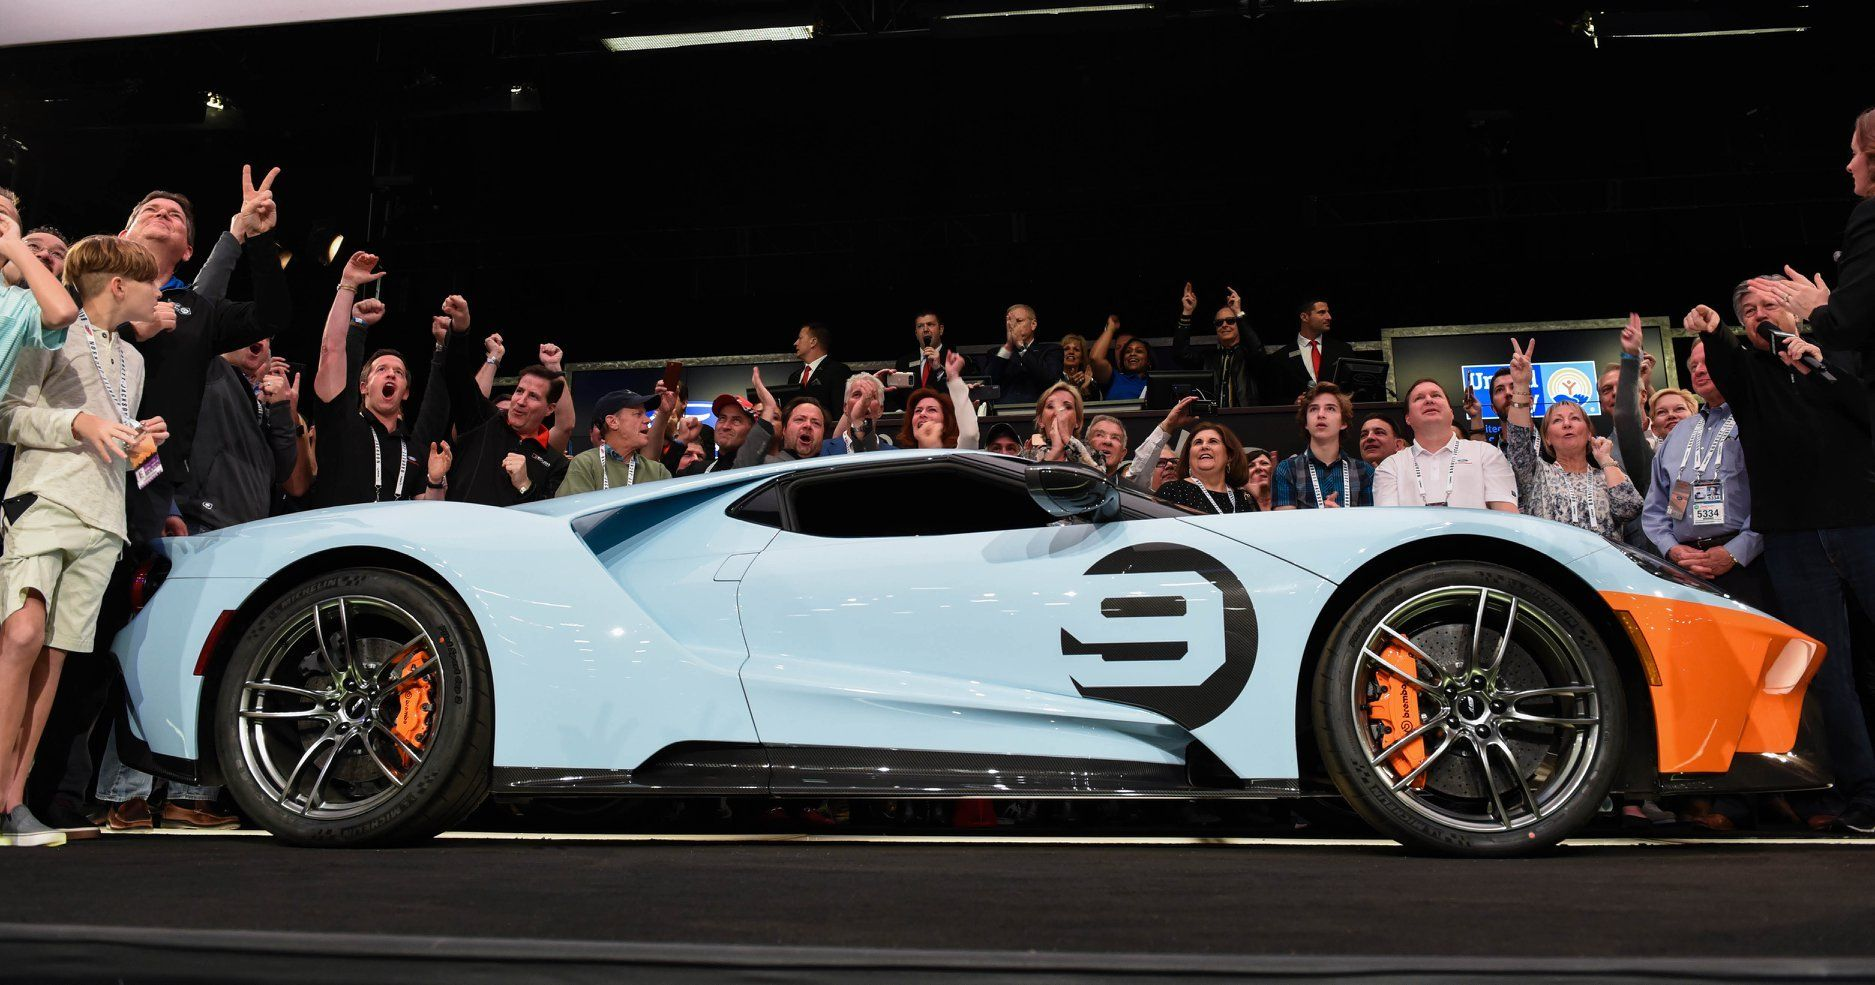 2019 Ford Gt Heritage Edition Vin 001 Sells For 2 5 Million